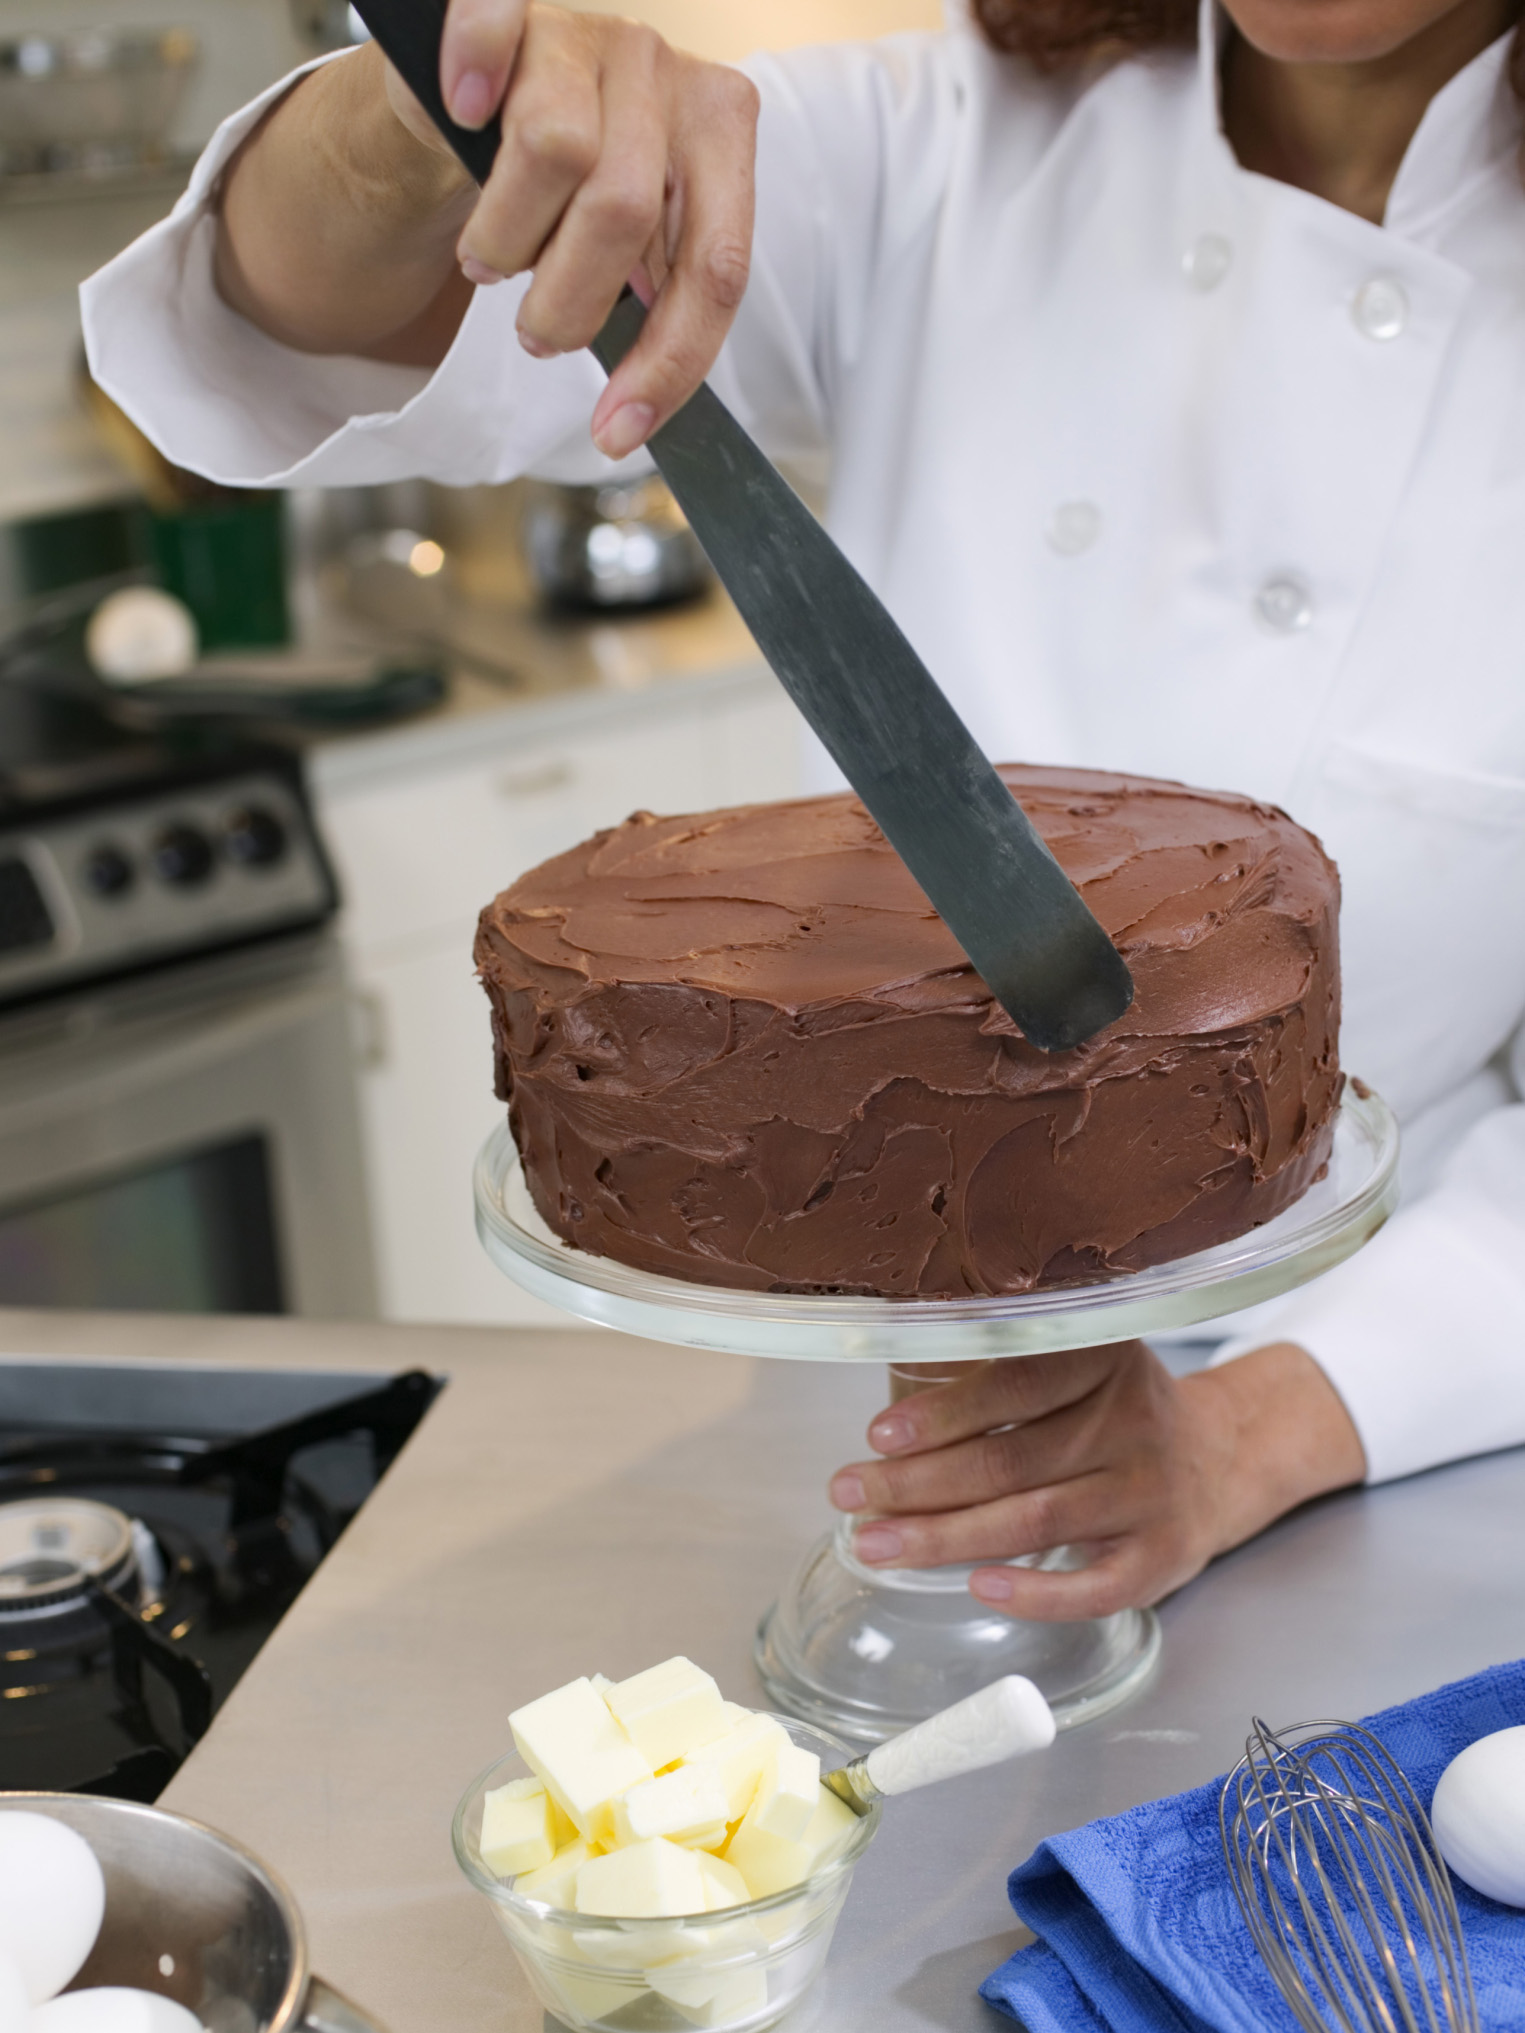 Top 10 Tips To Bake The Finest Cakes